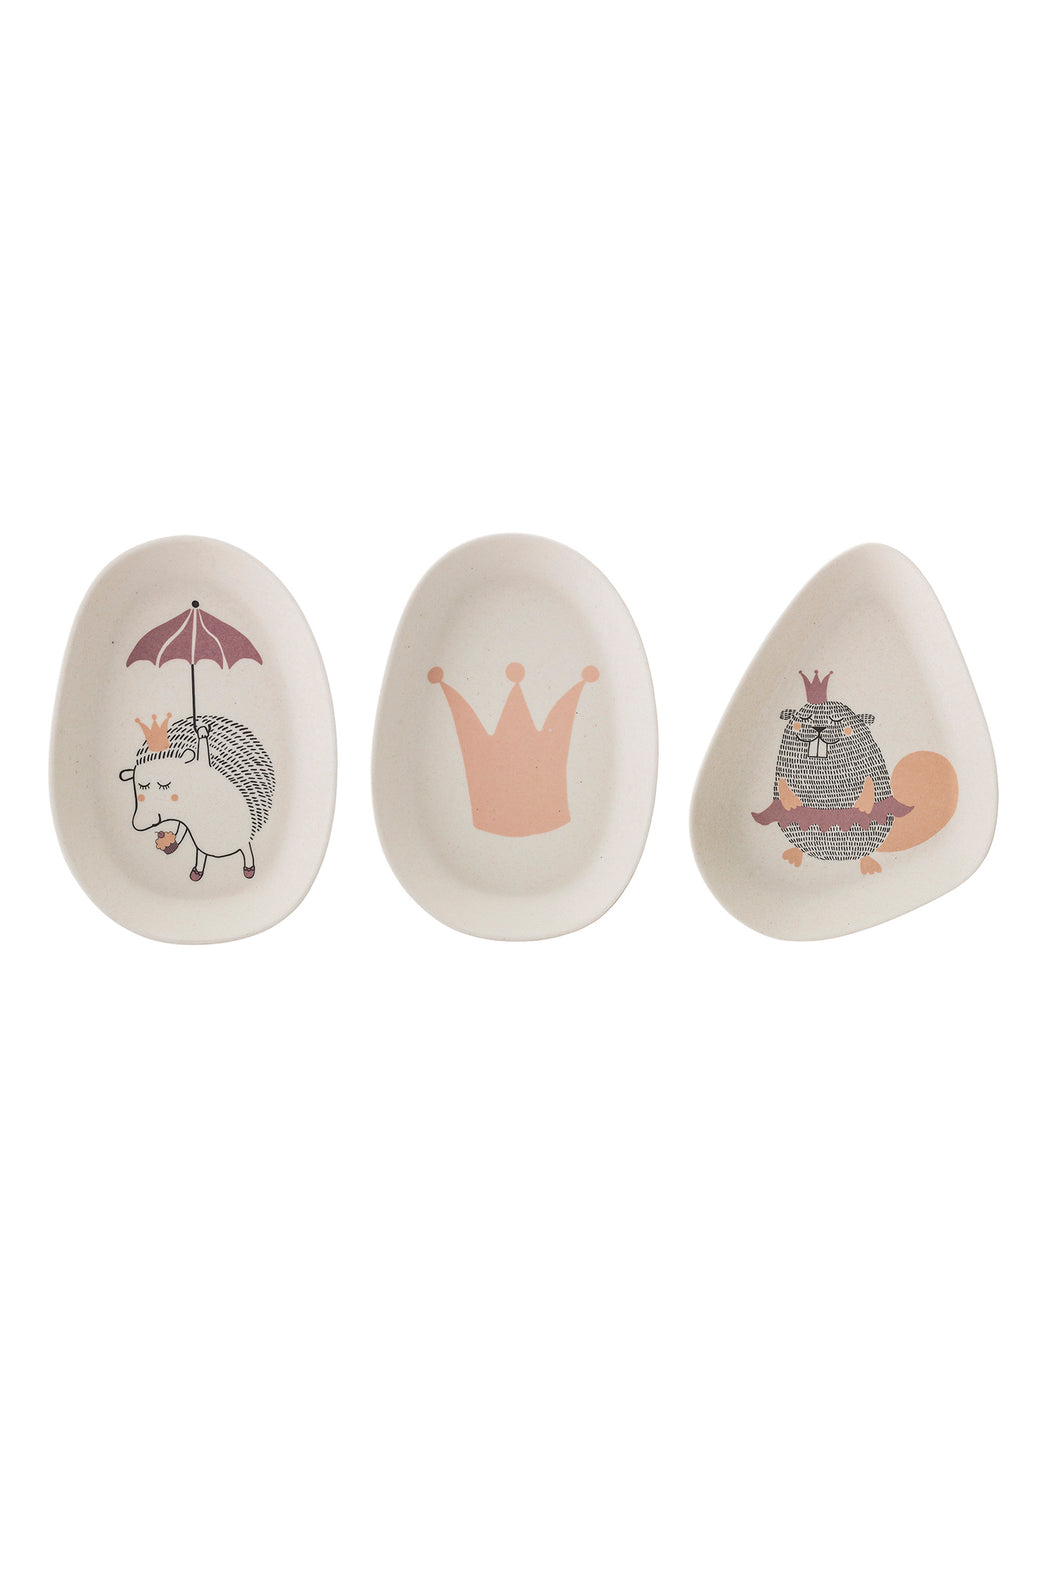 Princess Bamboo Plates, Dining, Bloomingville - 3LittlePicks